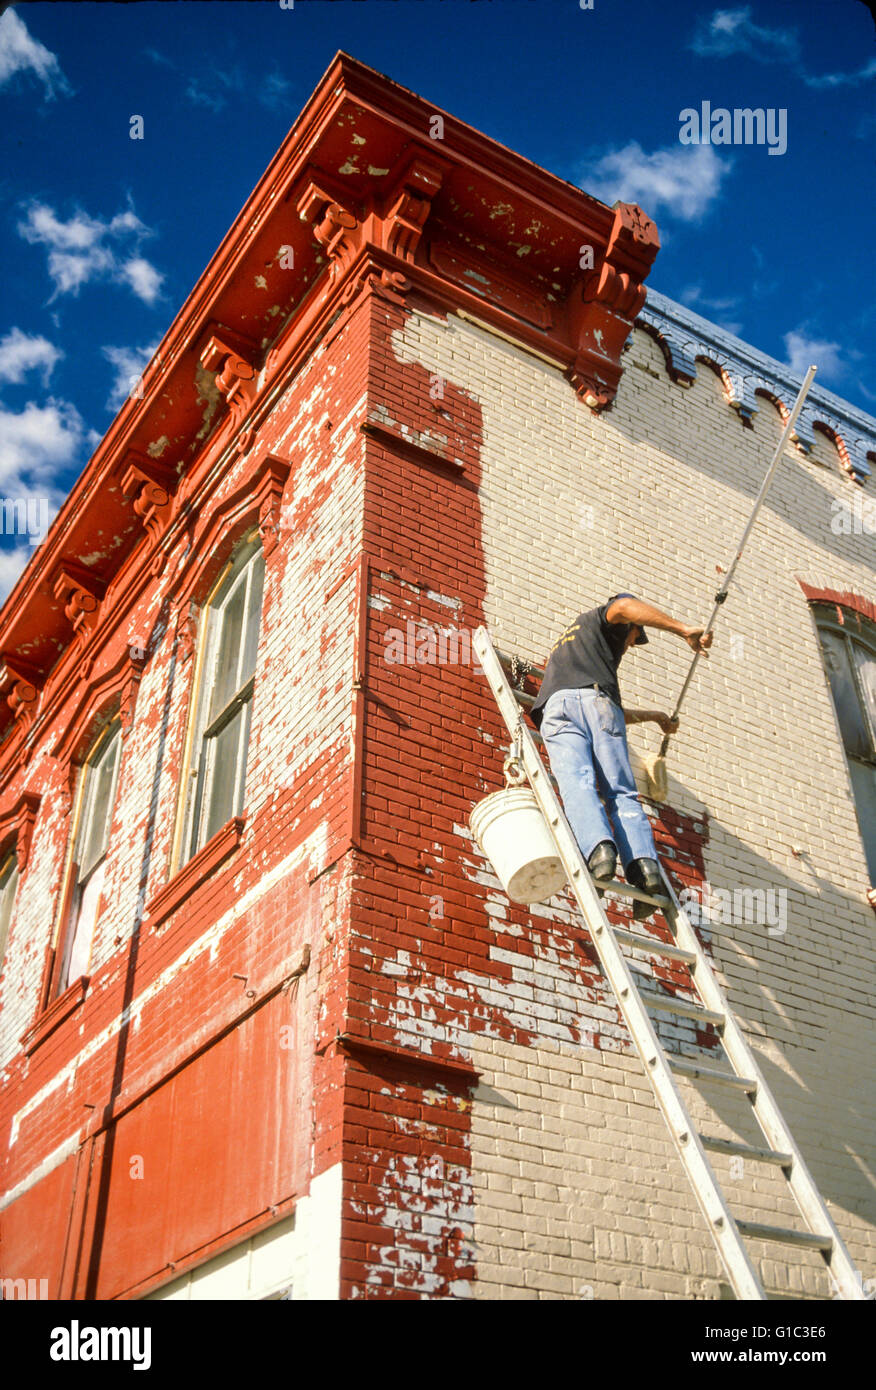 Painting historic brick building in Pittsfield, Illinois.POV  © Myrleen Pearson - Stock Image